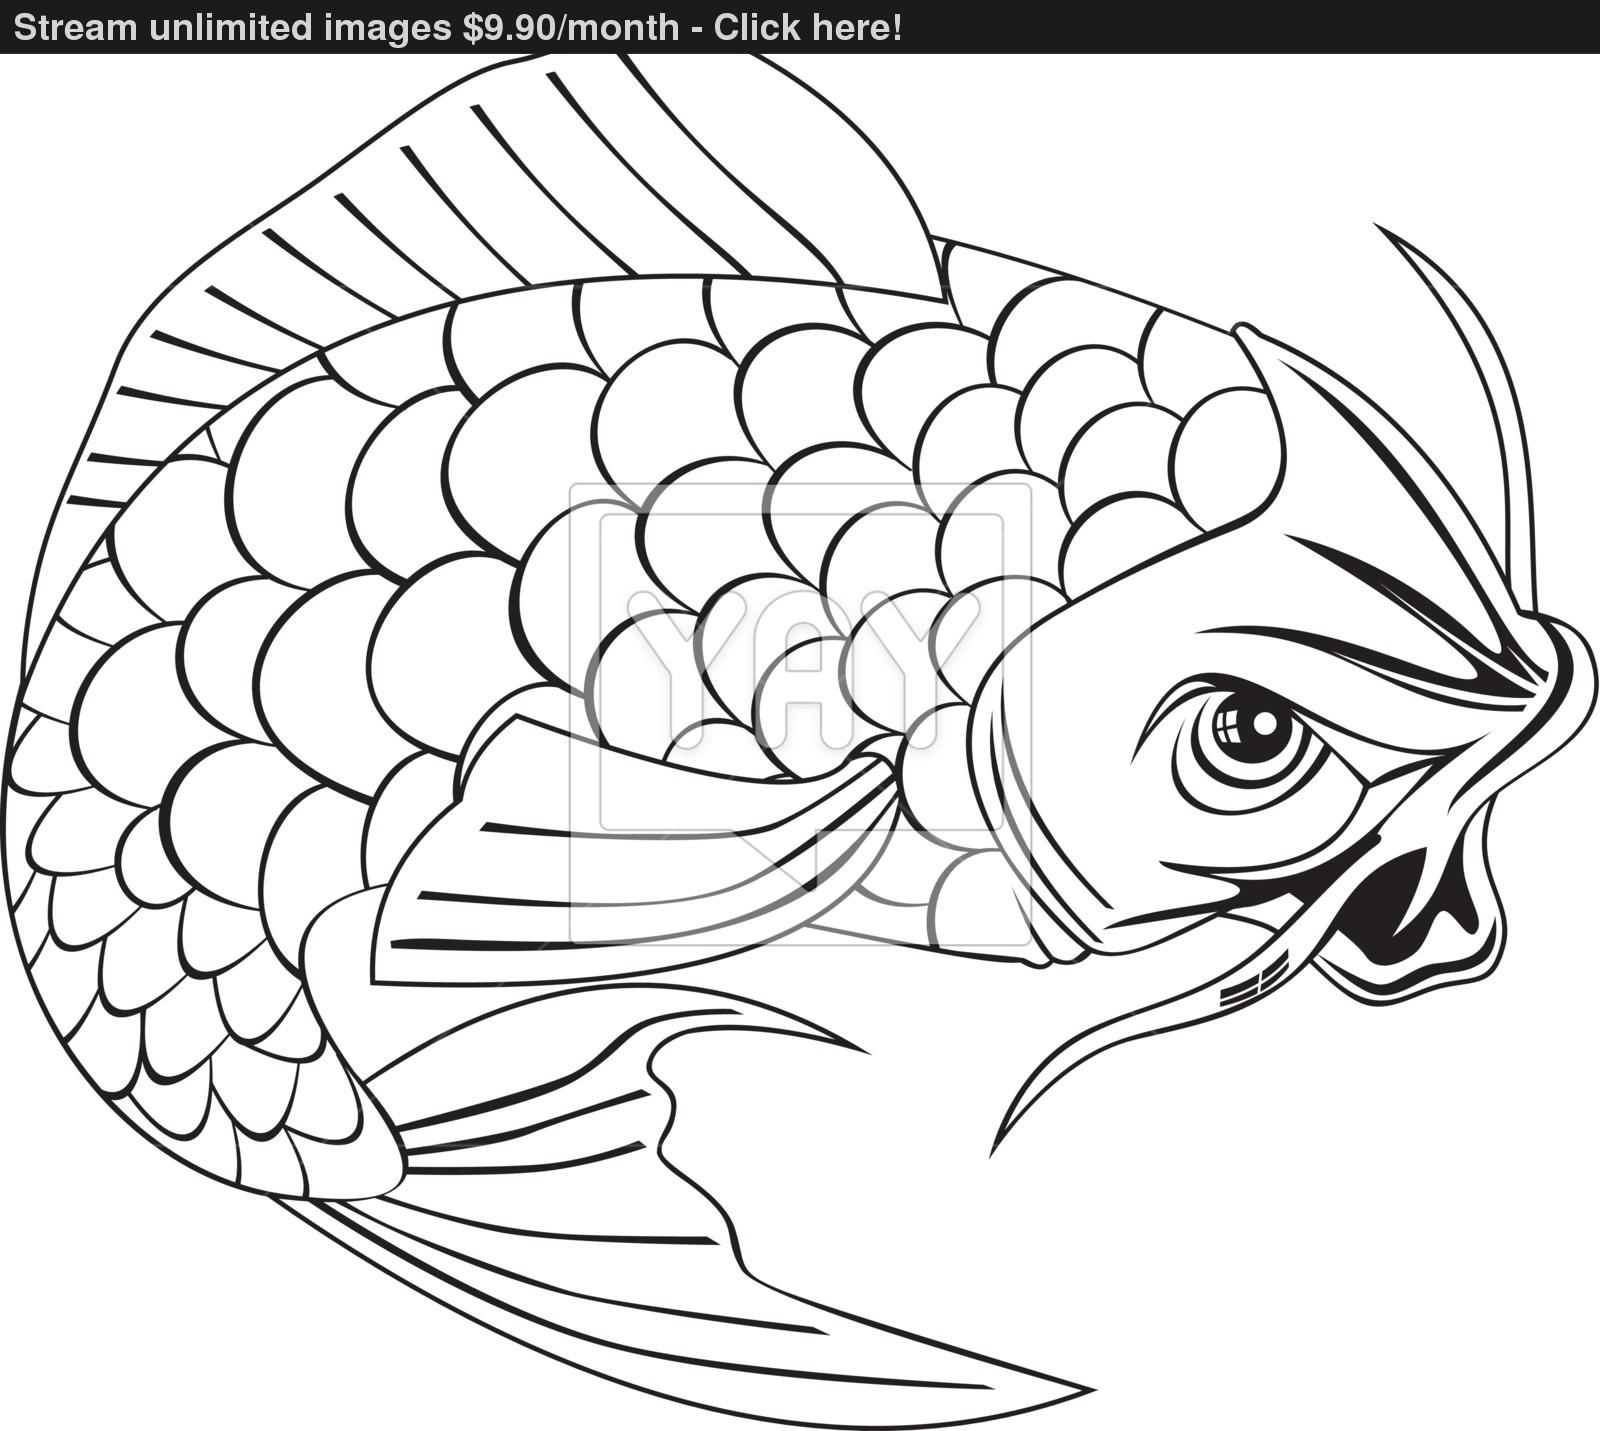 Koi Fish Drawing At Getdrawings Com Free For Personal Use Koi Fish